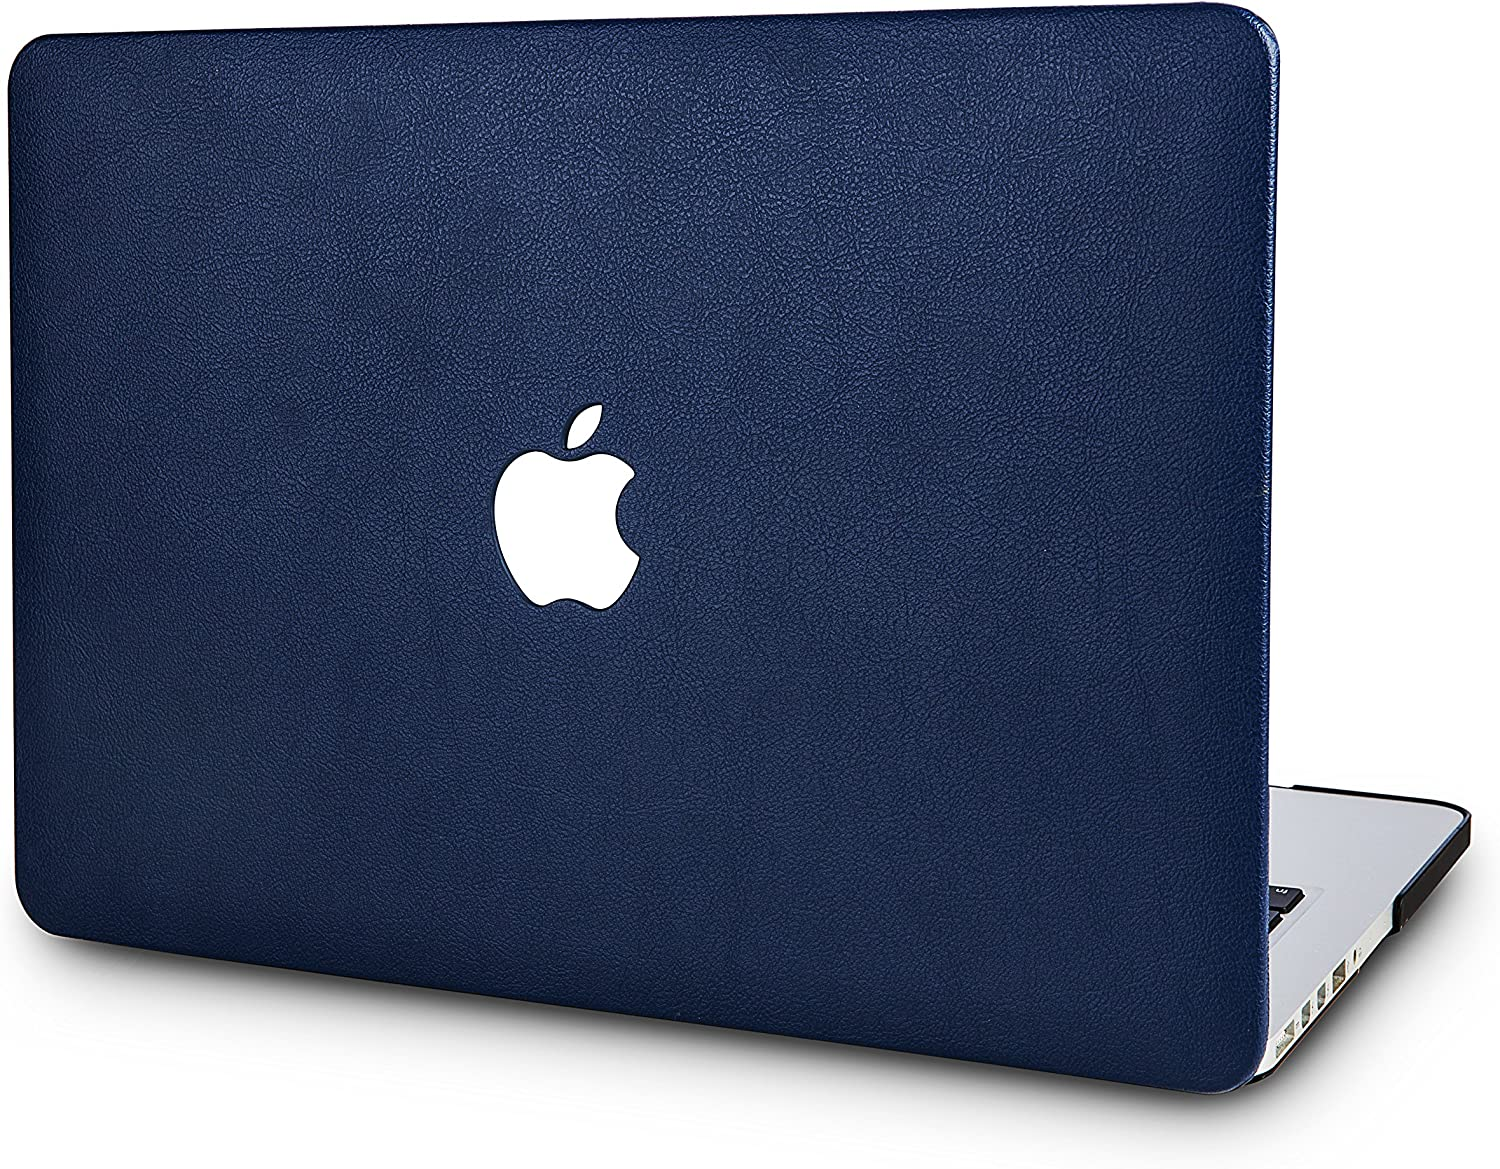 "KECC Laptop Case for MacBook Air 13"" Italian Leather Hard Shell Cover A1466/A1369 (Navy Blue Leather)"